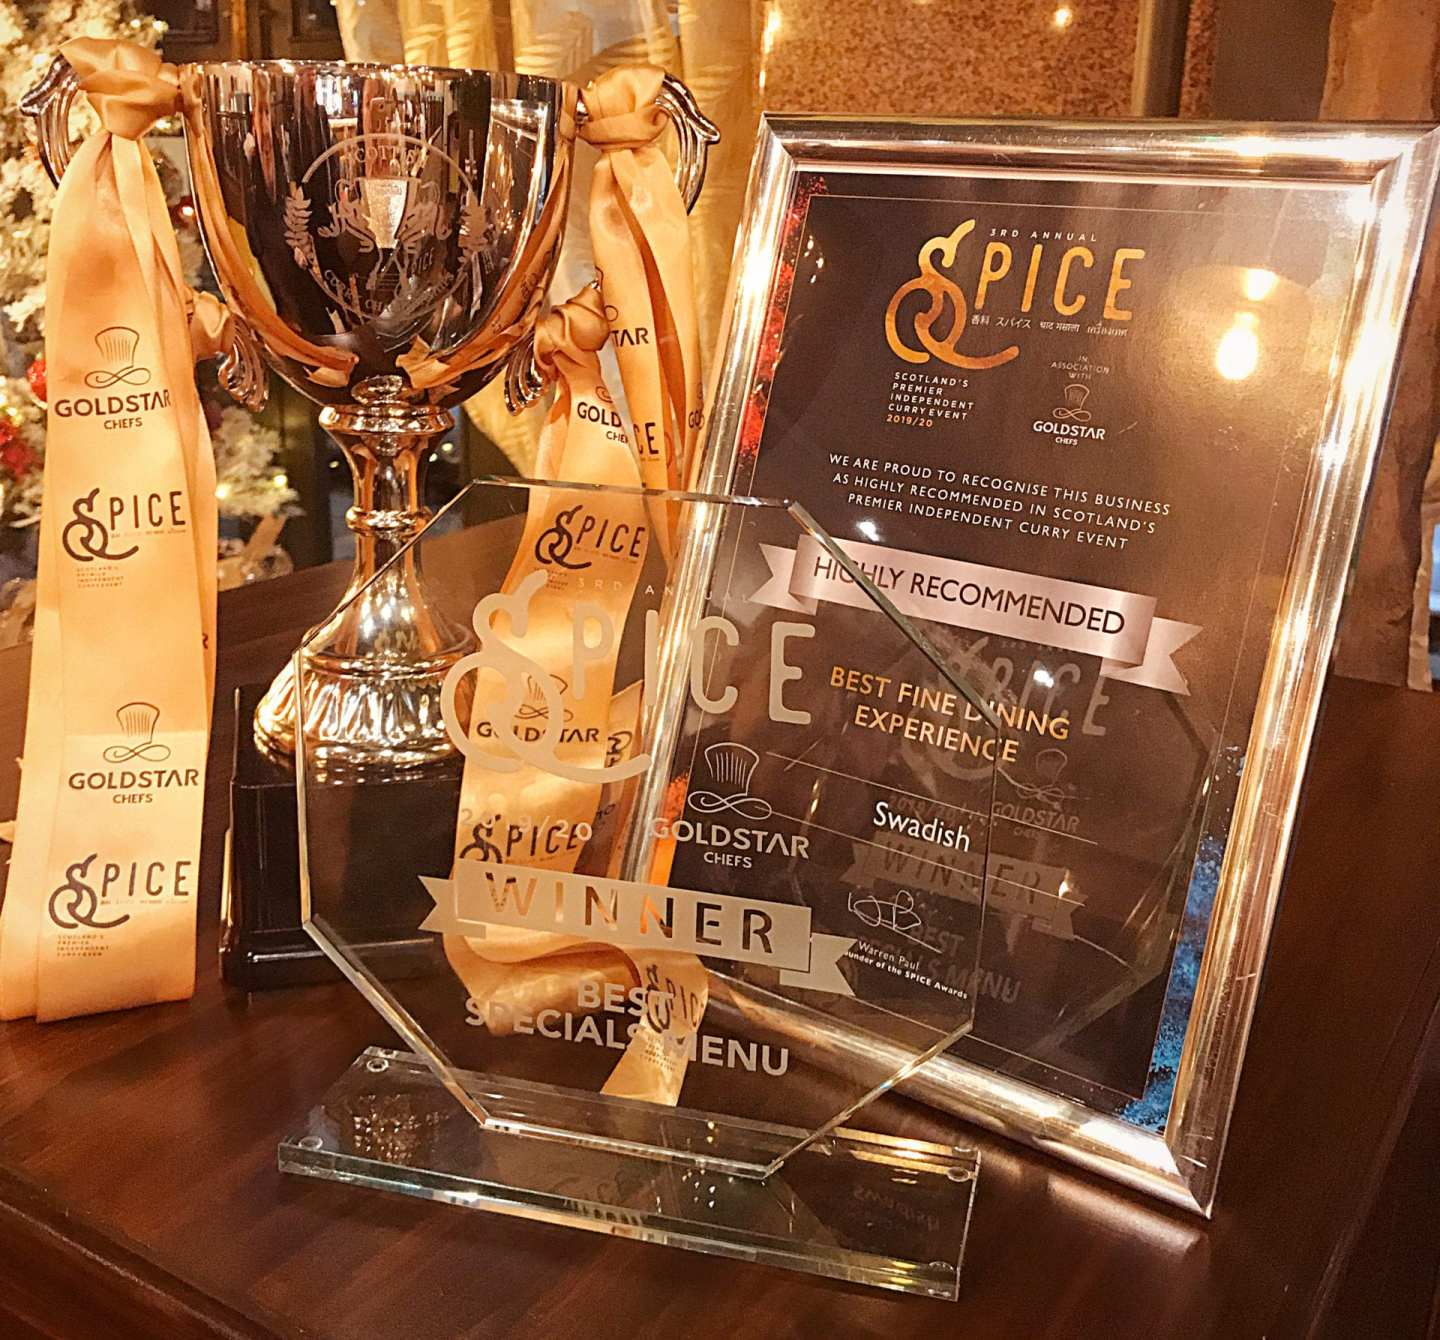 Swadish spice awards Glasgow